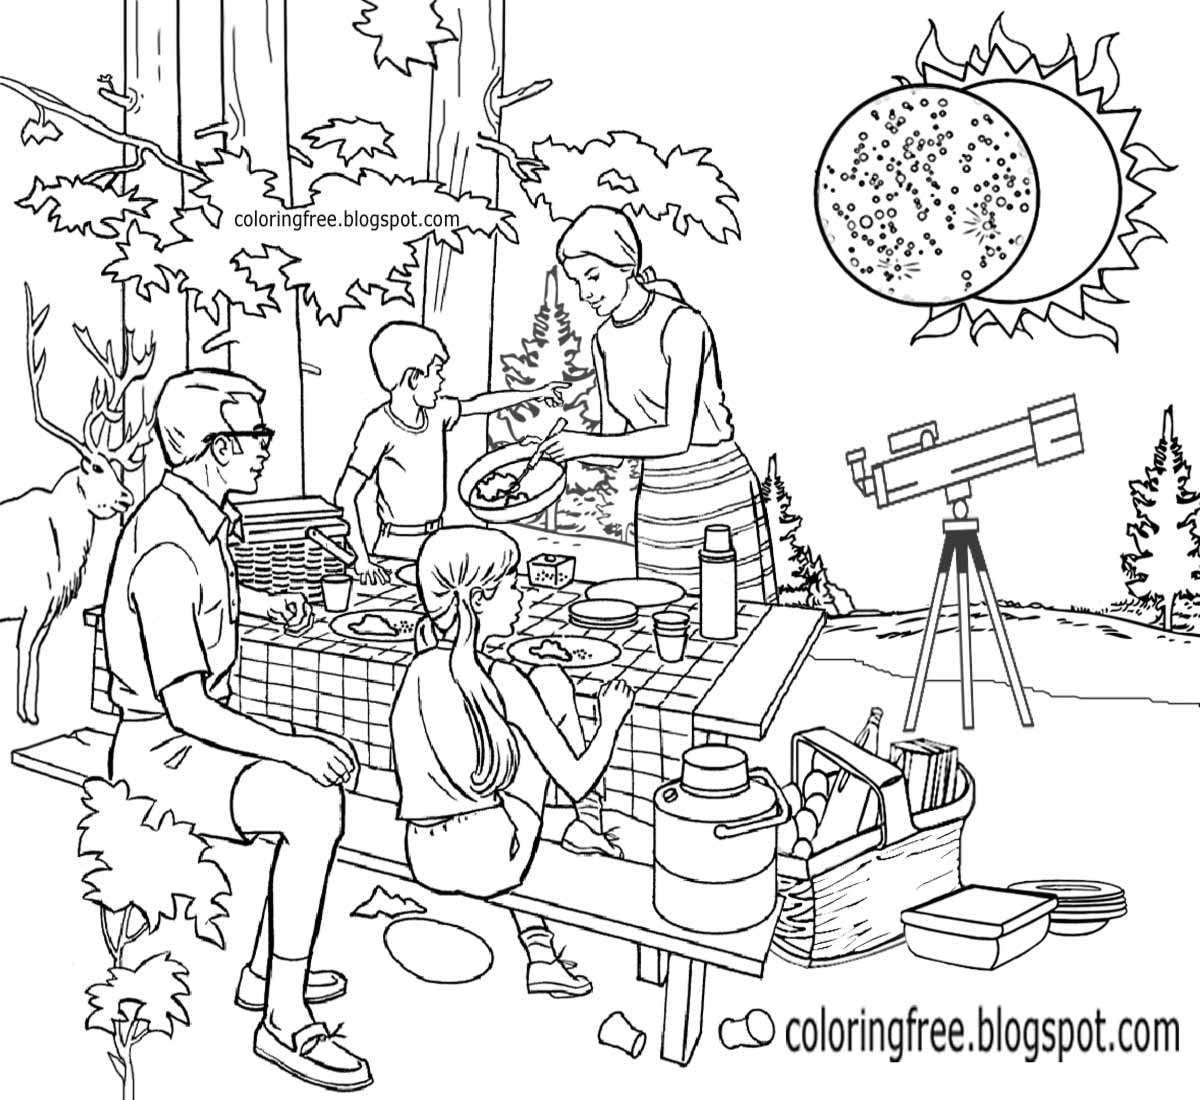 The Best Free Eclipse Coloring Page Images Download From 111 Free